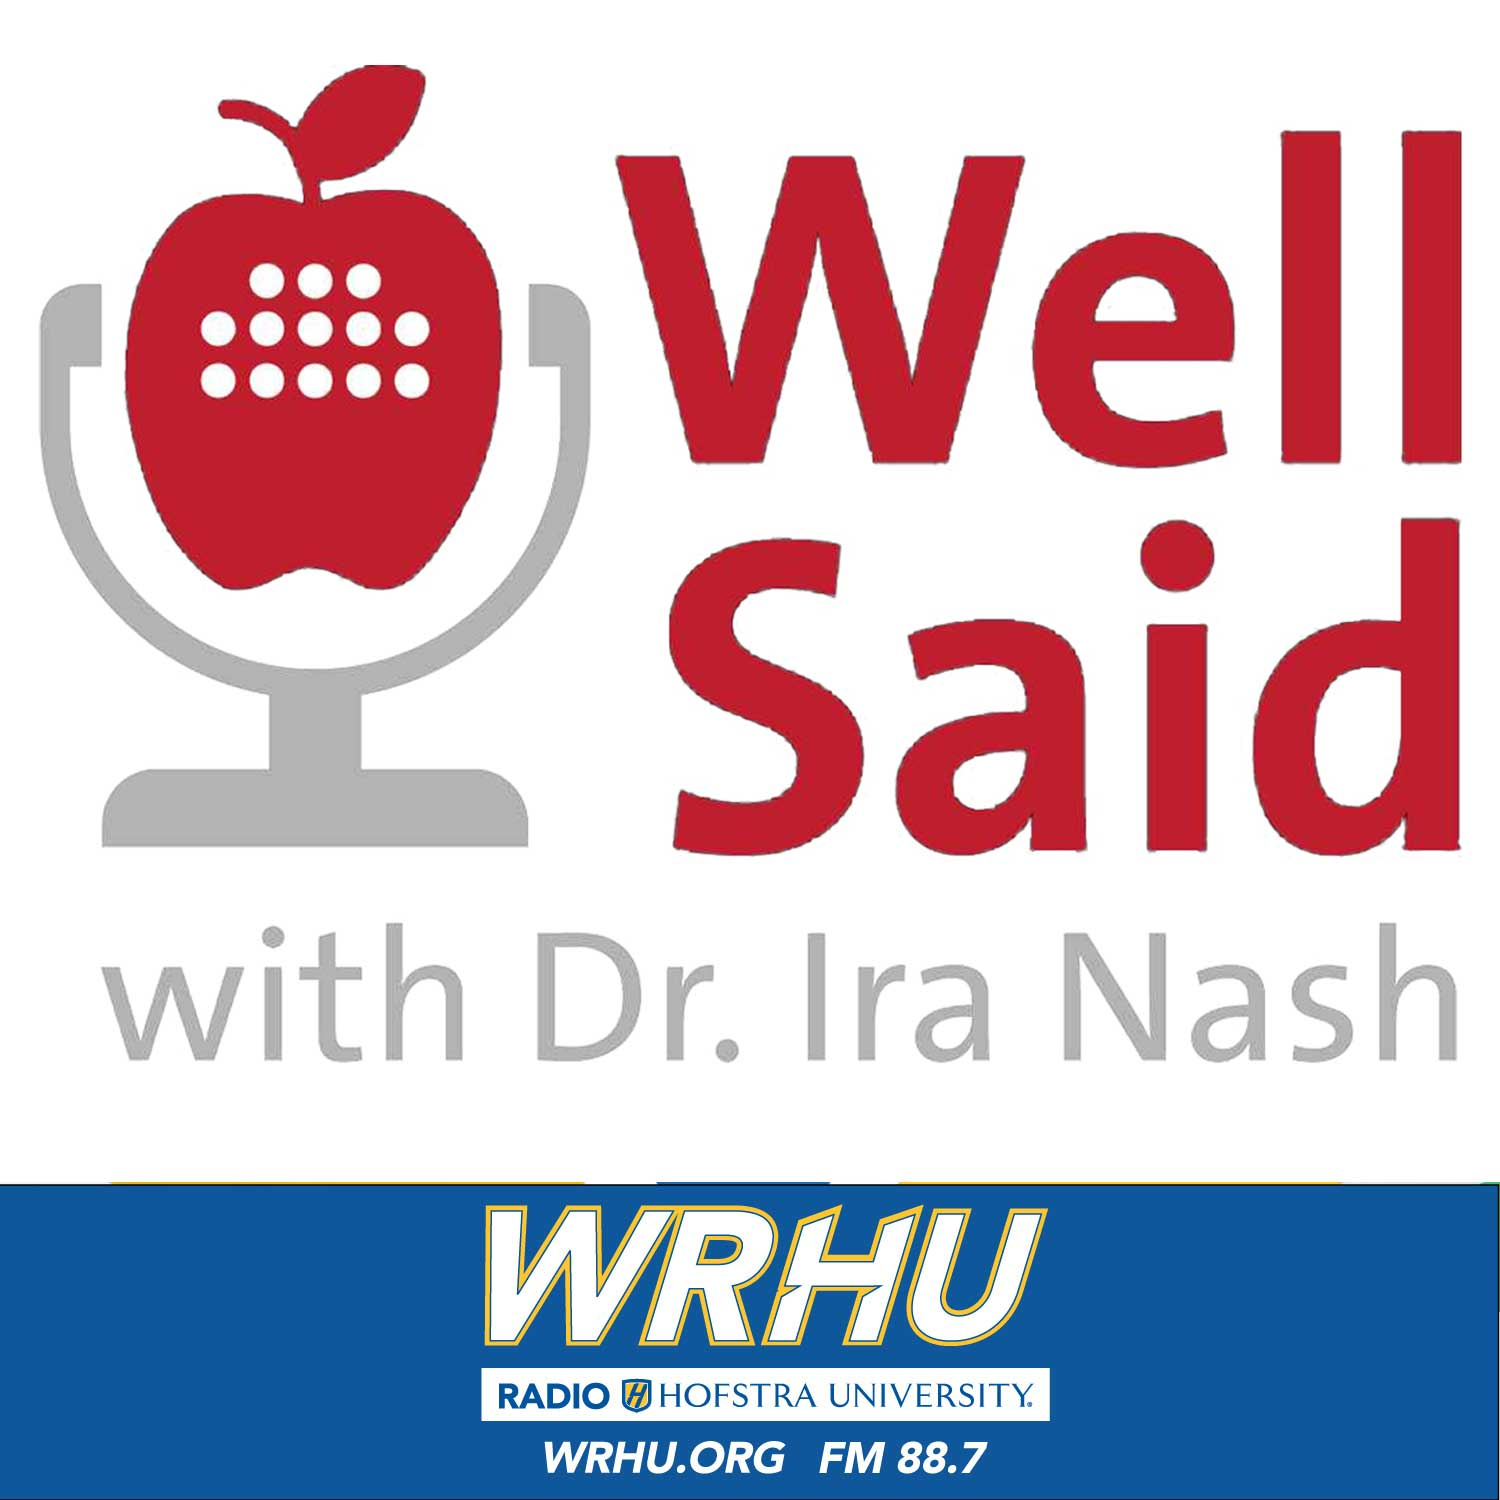 Well Said with Dr. Ira Nash - WRHU - Radio Hofstra University - 88.7 FM